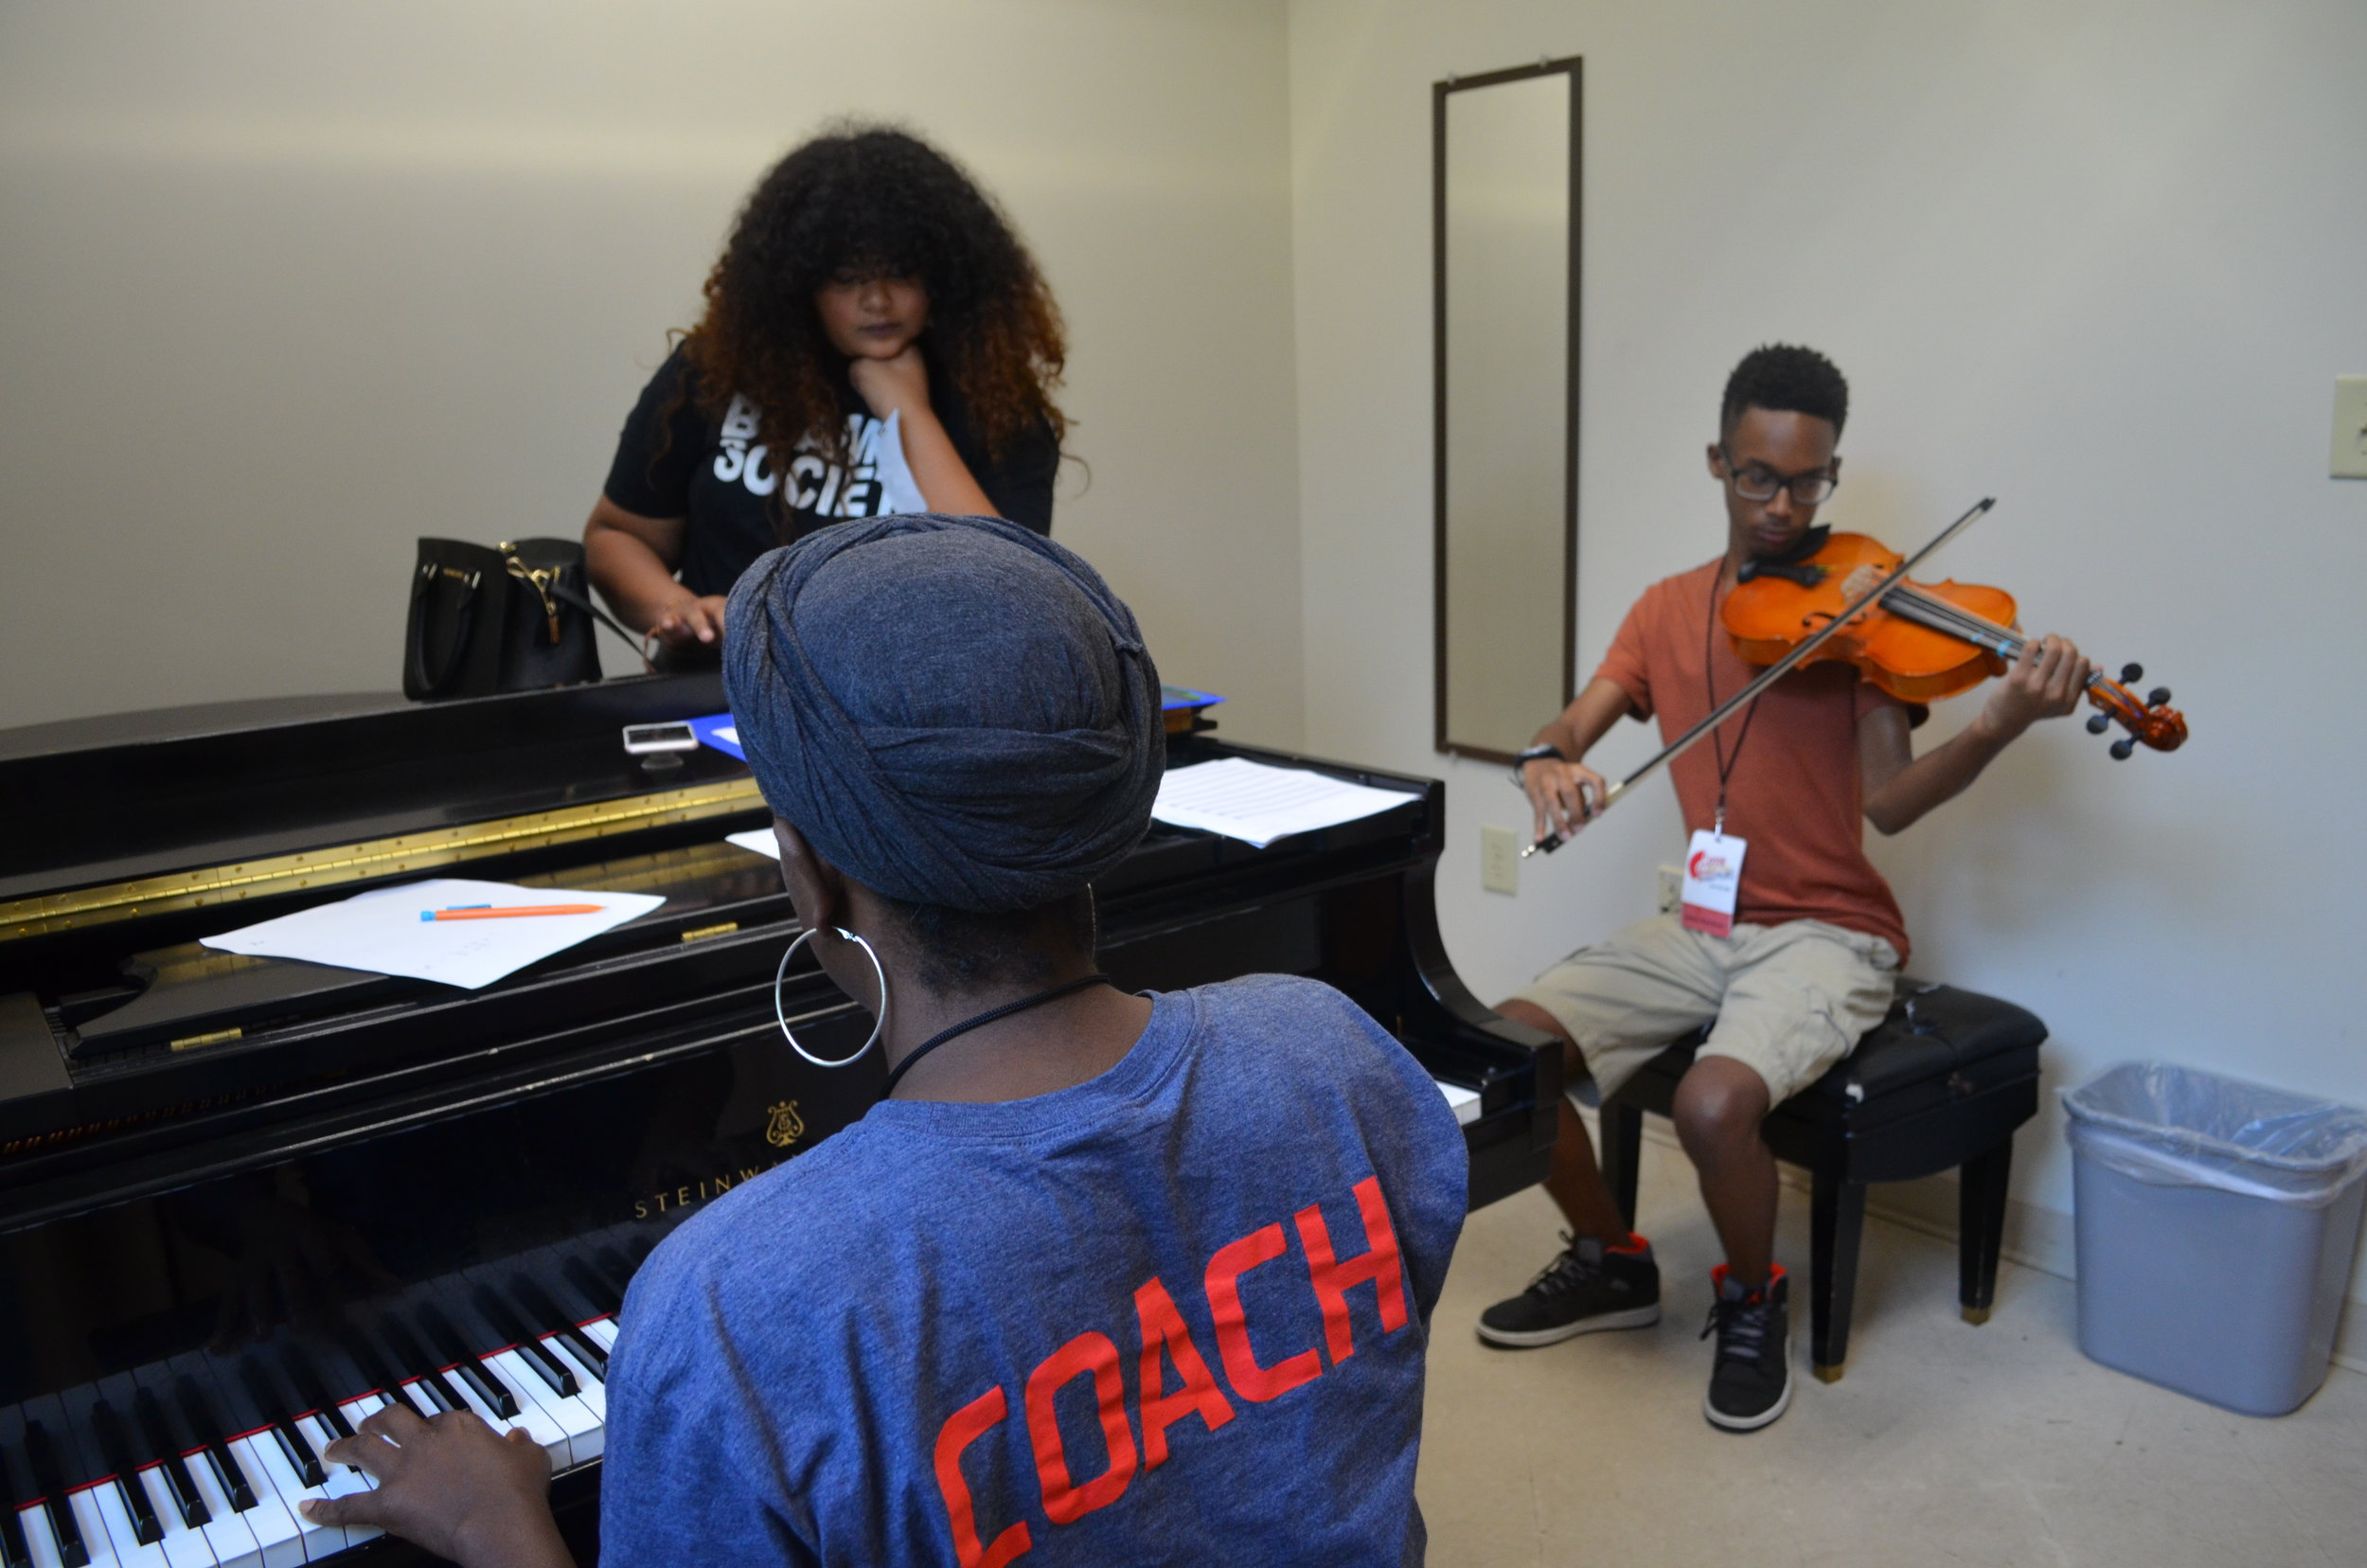 On day one campers chose the genres they wanted to learn more about and immediately headed into practice rooms.